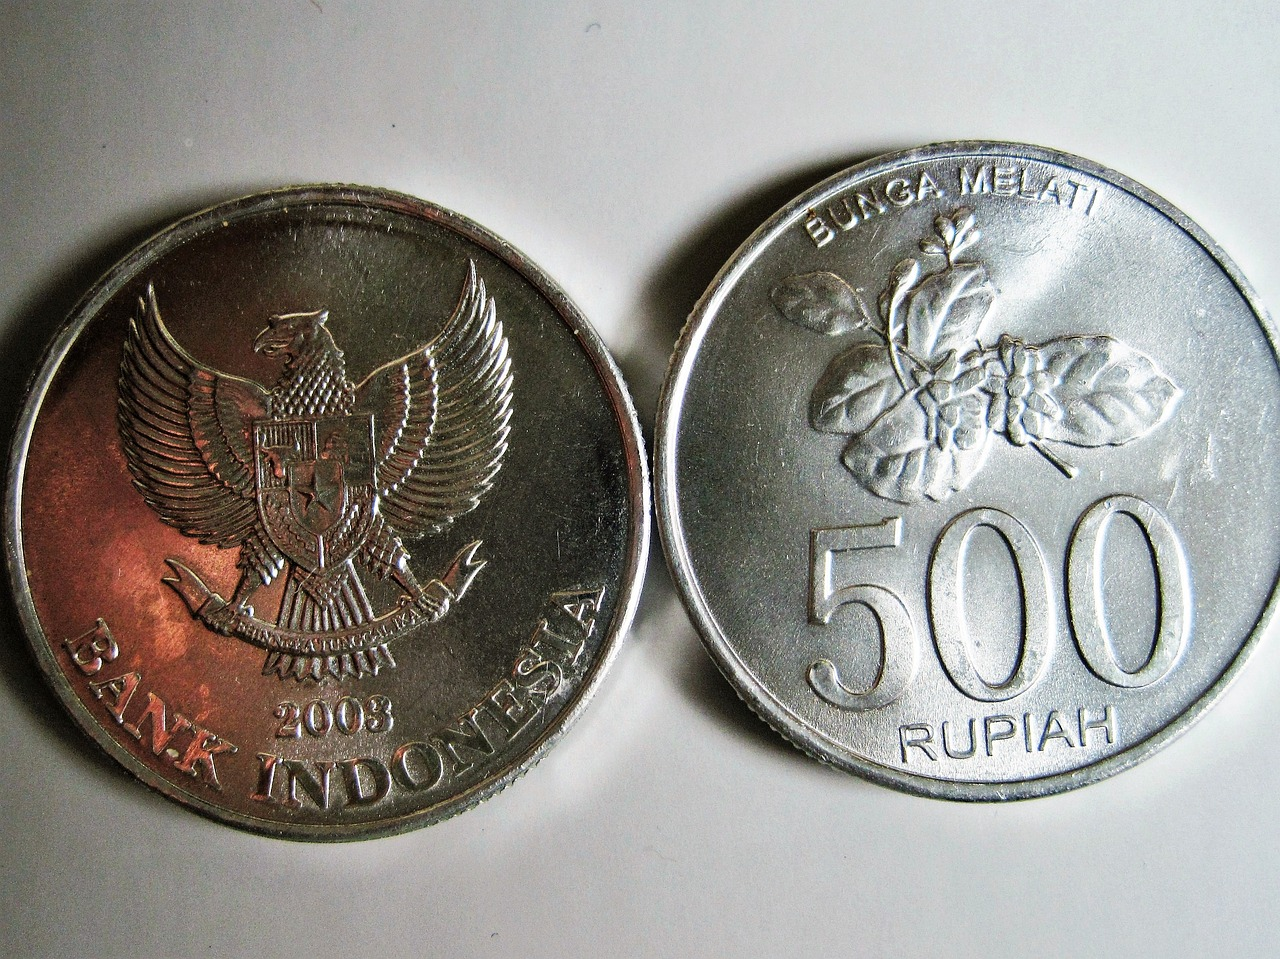 Indochinese rupiah,bank indonesia,coins,money,currency ...